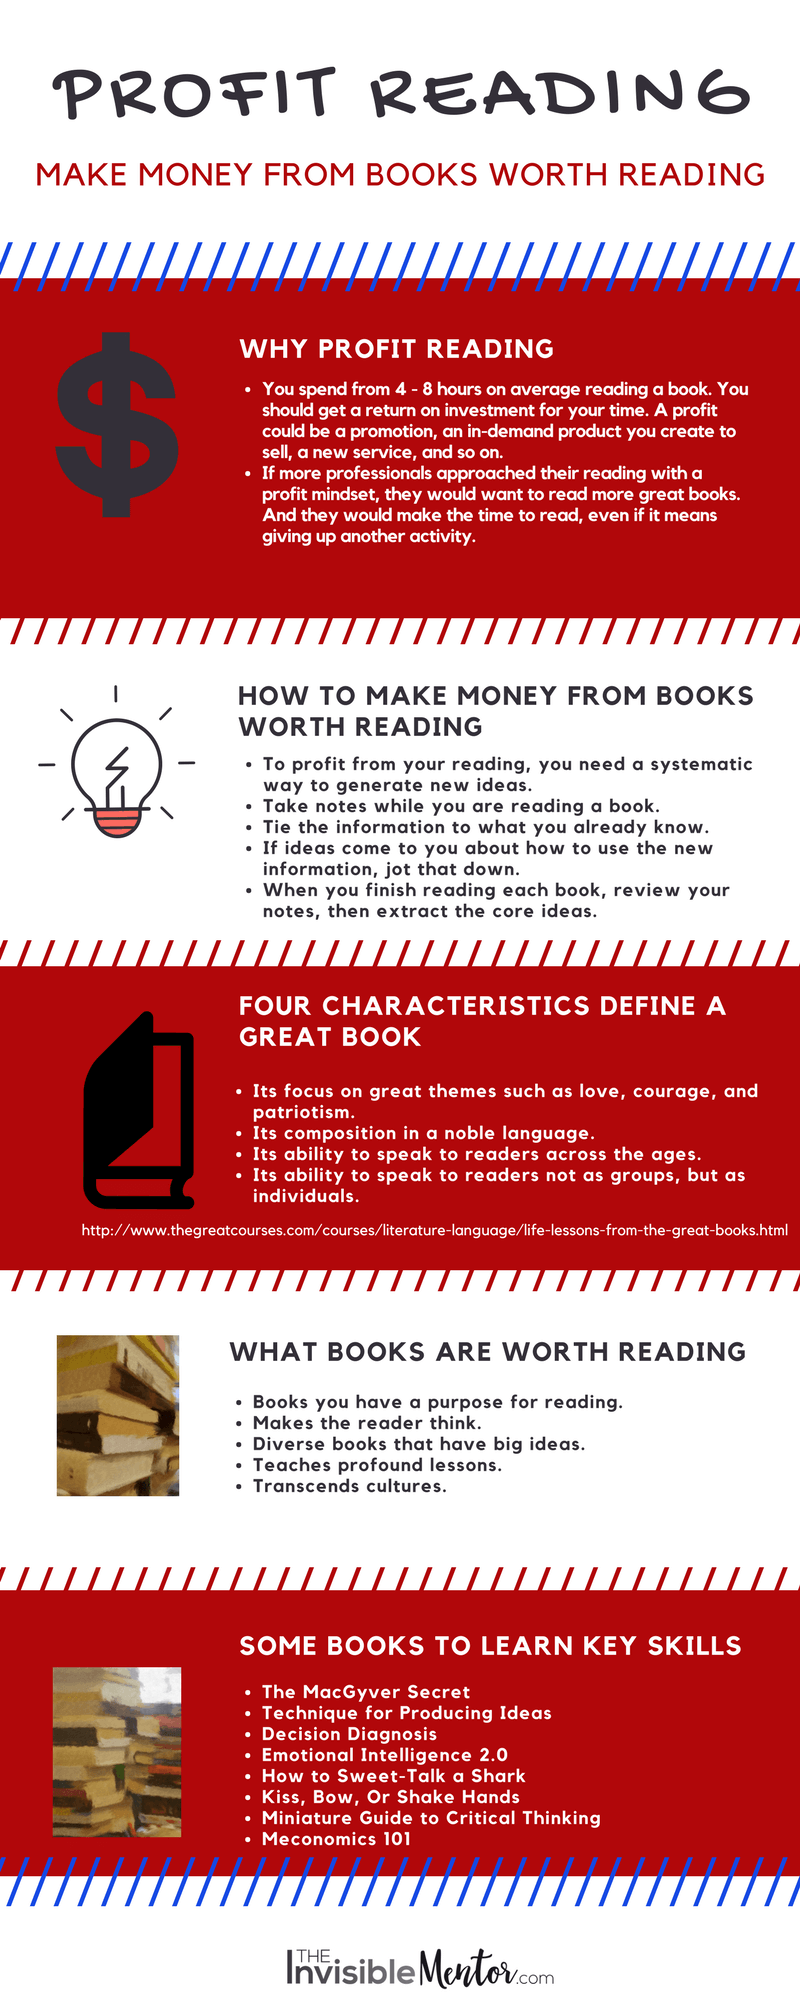 great benefits of reading books,importance of reading books,reasons why reading is important, profit reading, make money from reading books, make money from ideas, make money from ideas in books, profit from knowledge, return on investment reading books,financial gains reading books, financial gains reading, reading for profit